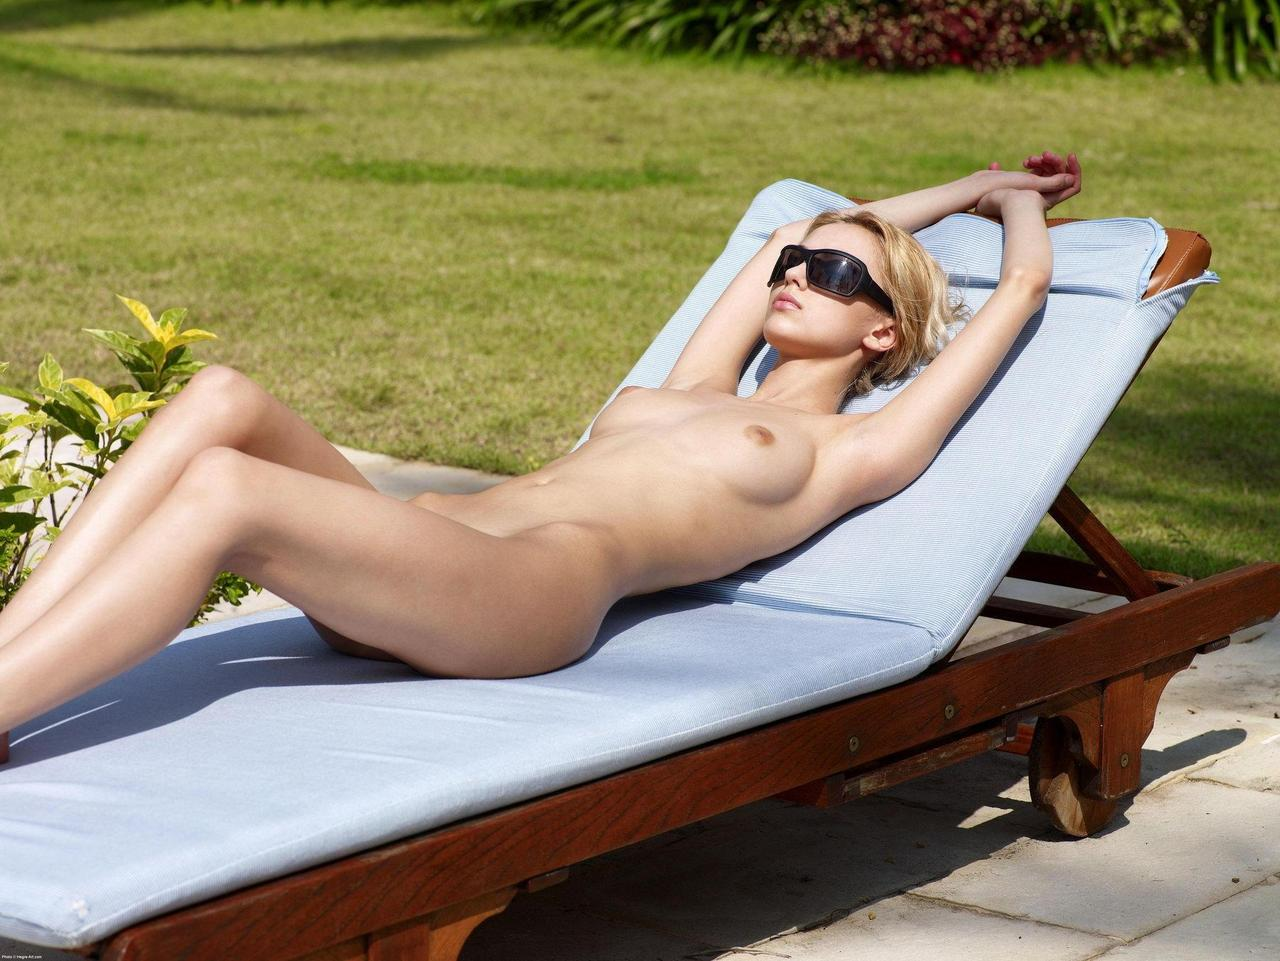 nude-girls-sunglasses-boobs-naked-mix-52